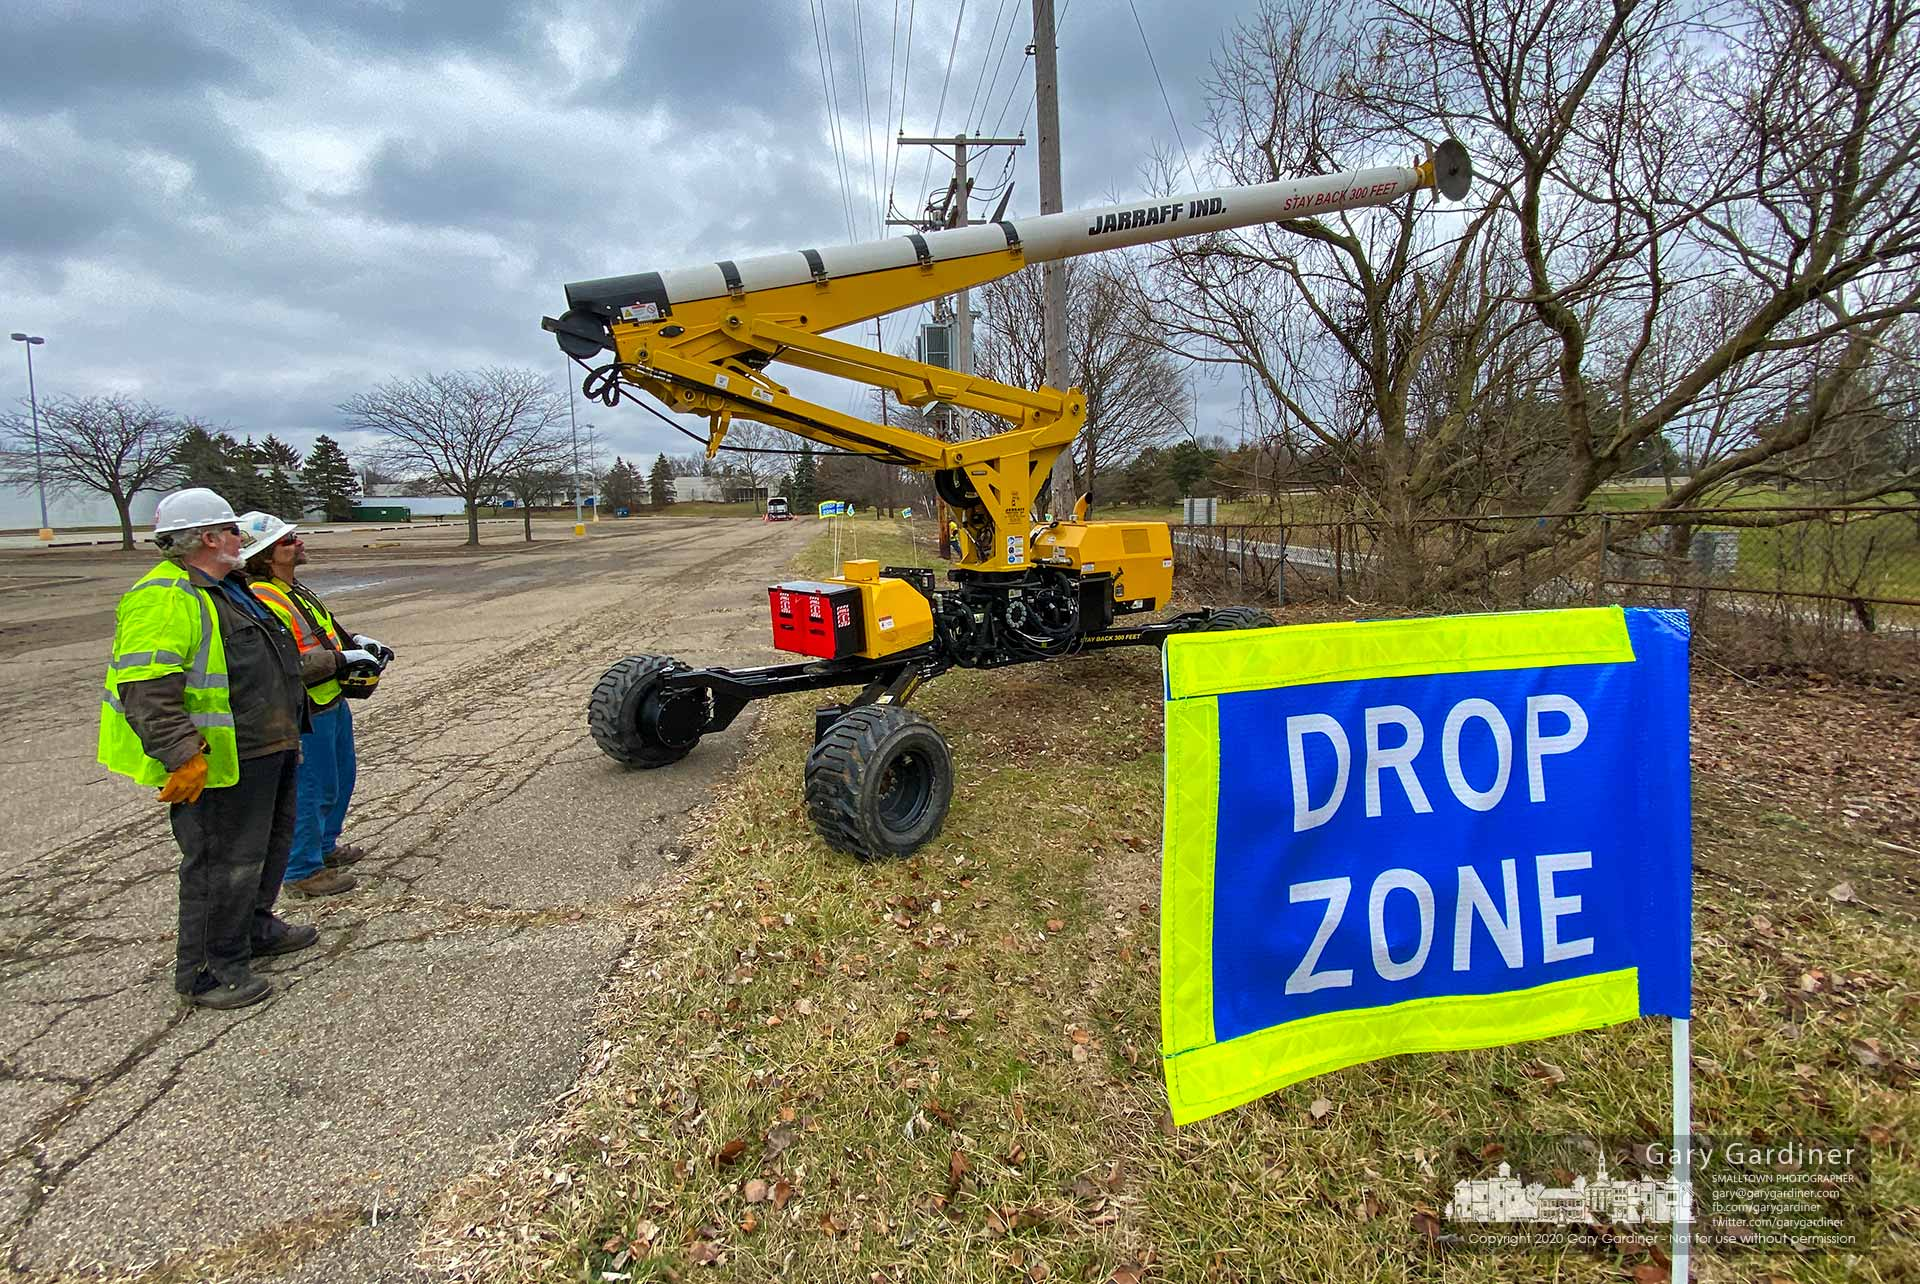 A set of boundary markers delineate the safety zone where a work crew uses a remote-controlled 24-inch circular saw blade on an extension arm to remove trees close to the AEP powerlines behind the Kohl's shopping center at Huber and State. My Final Photo for Jan. 28, 2020.